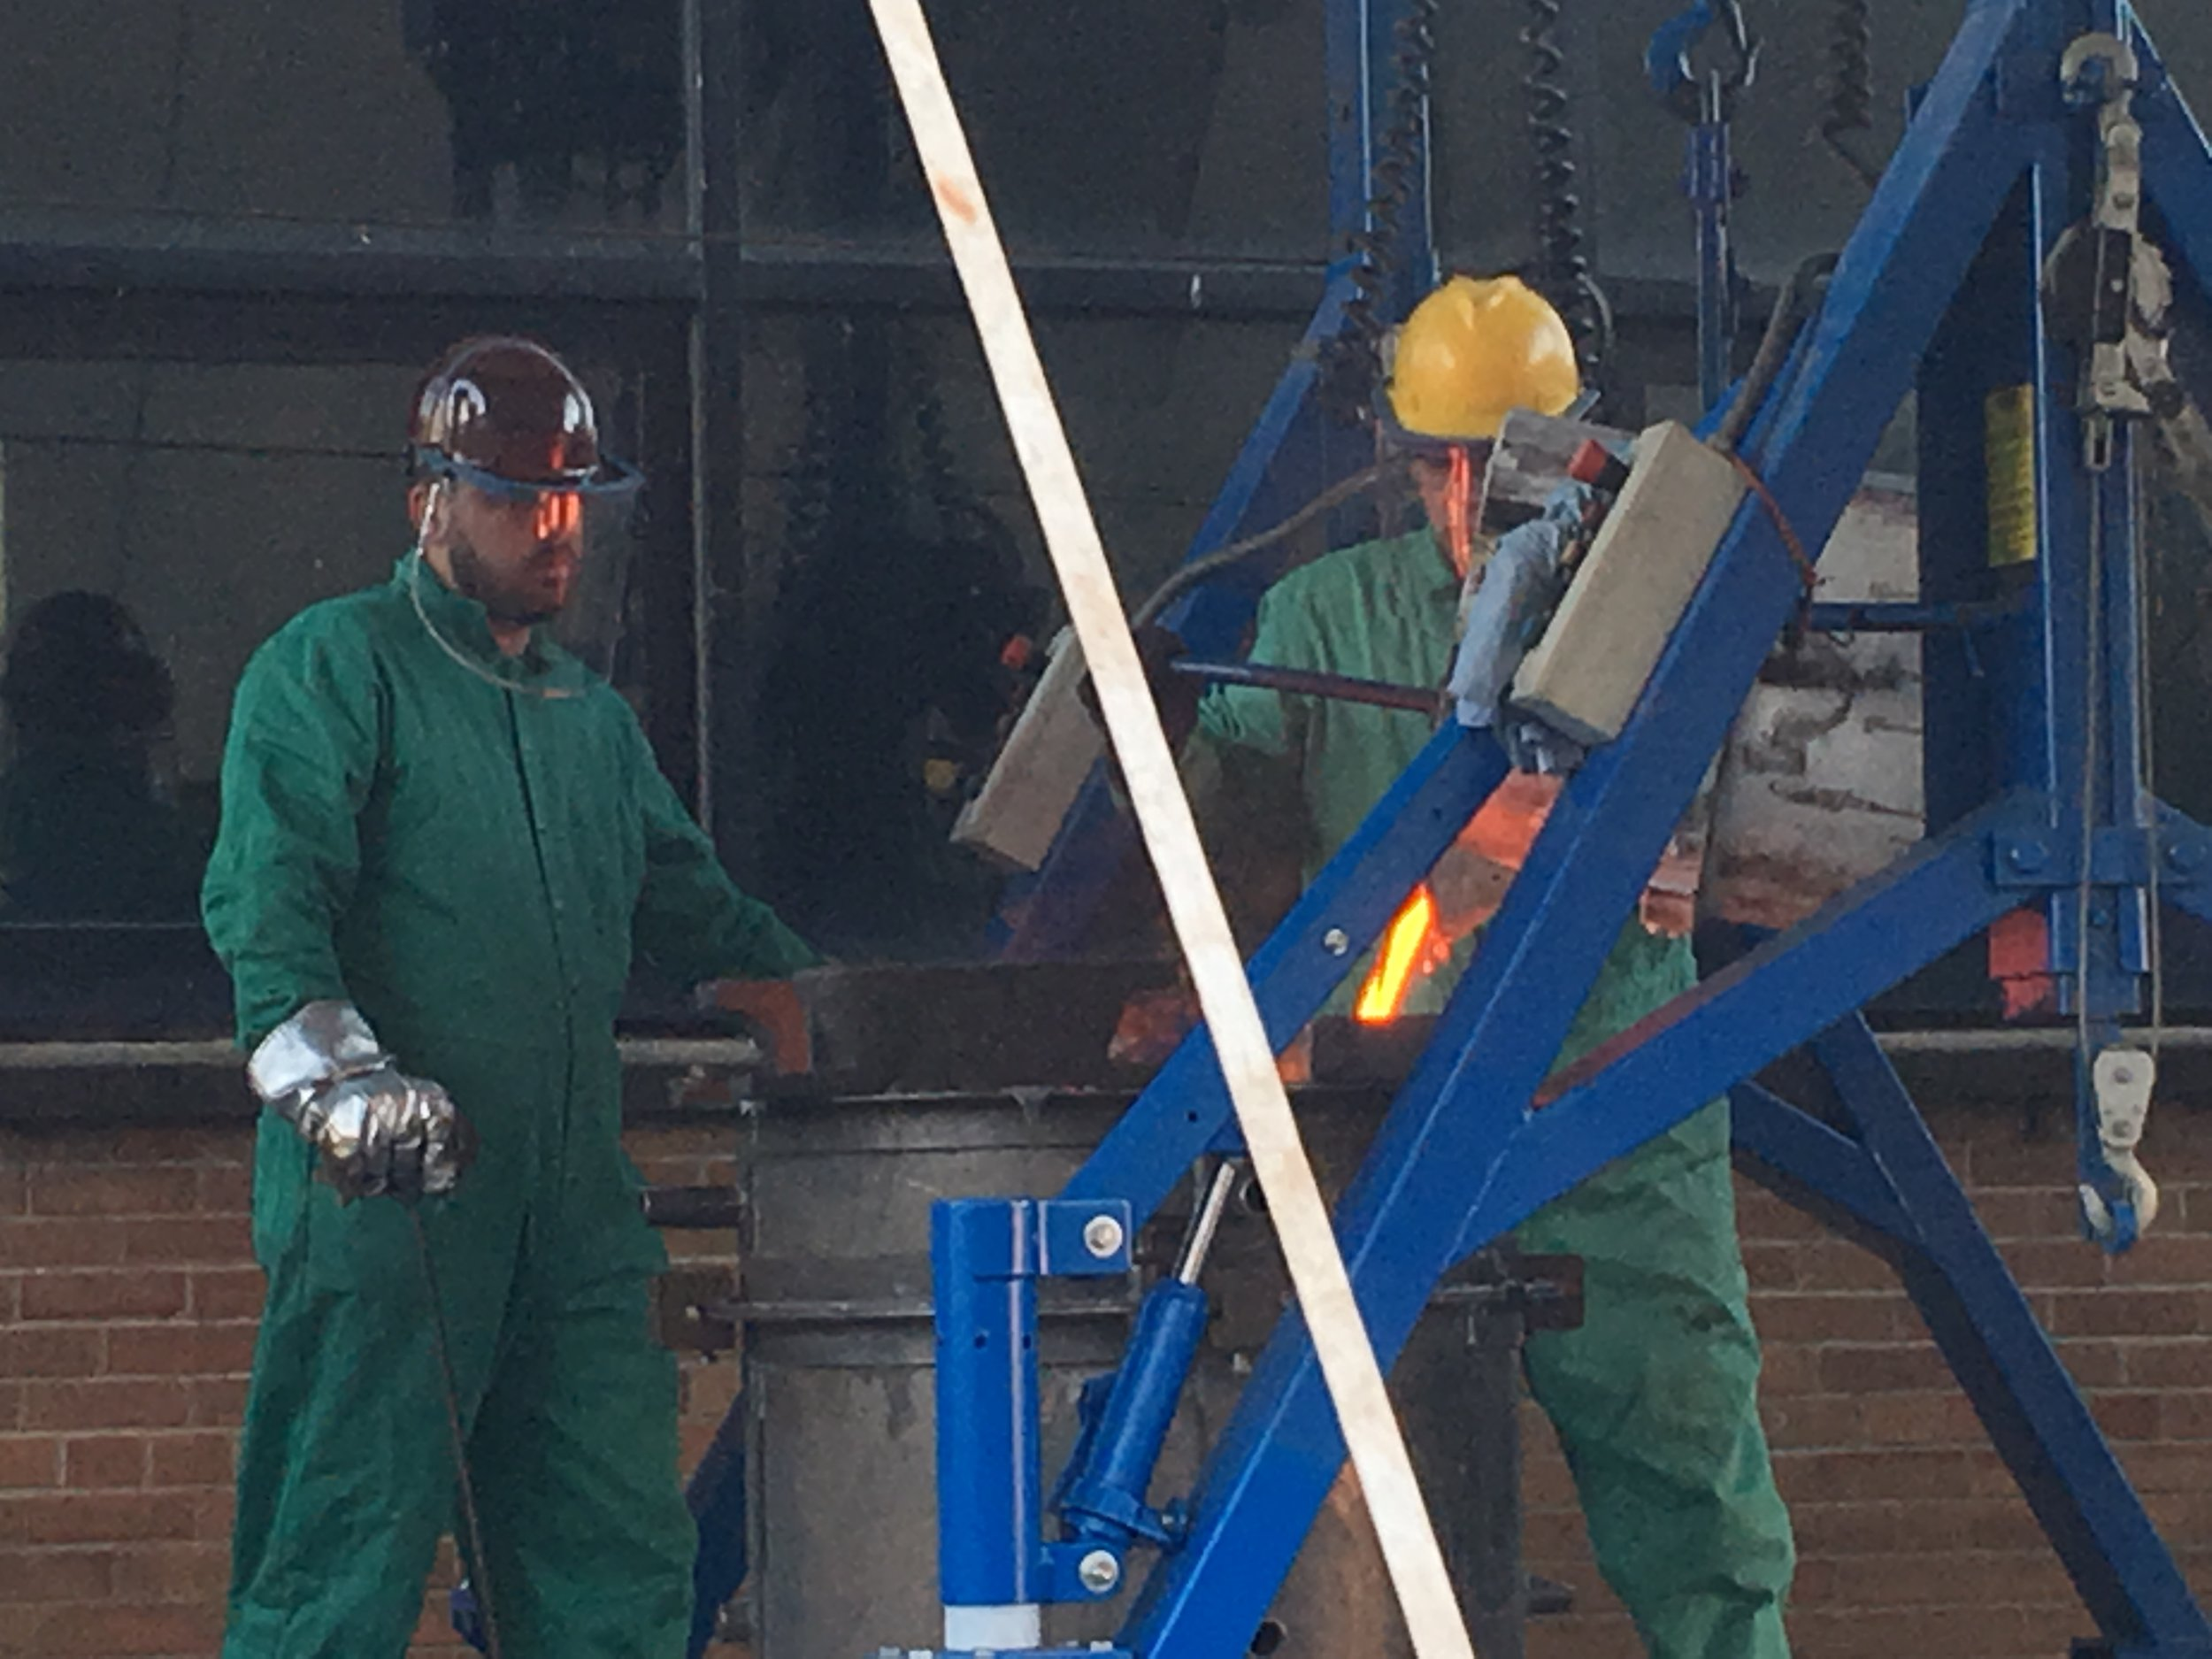 The molten bronze is poured into the mold. The mold will be opened in a few days.